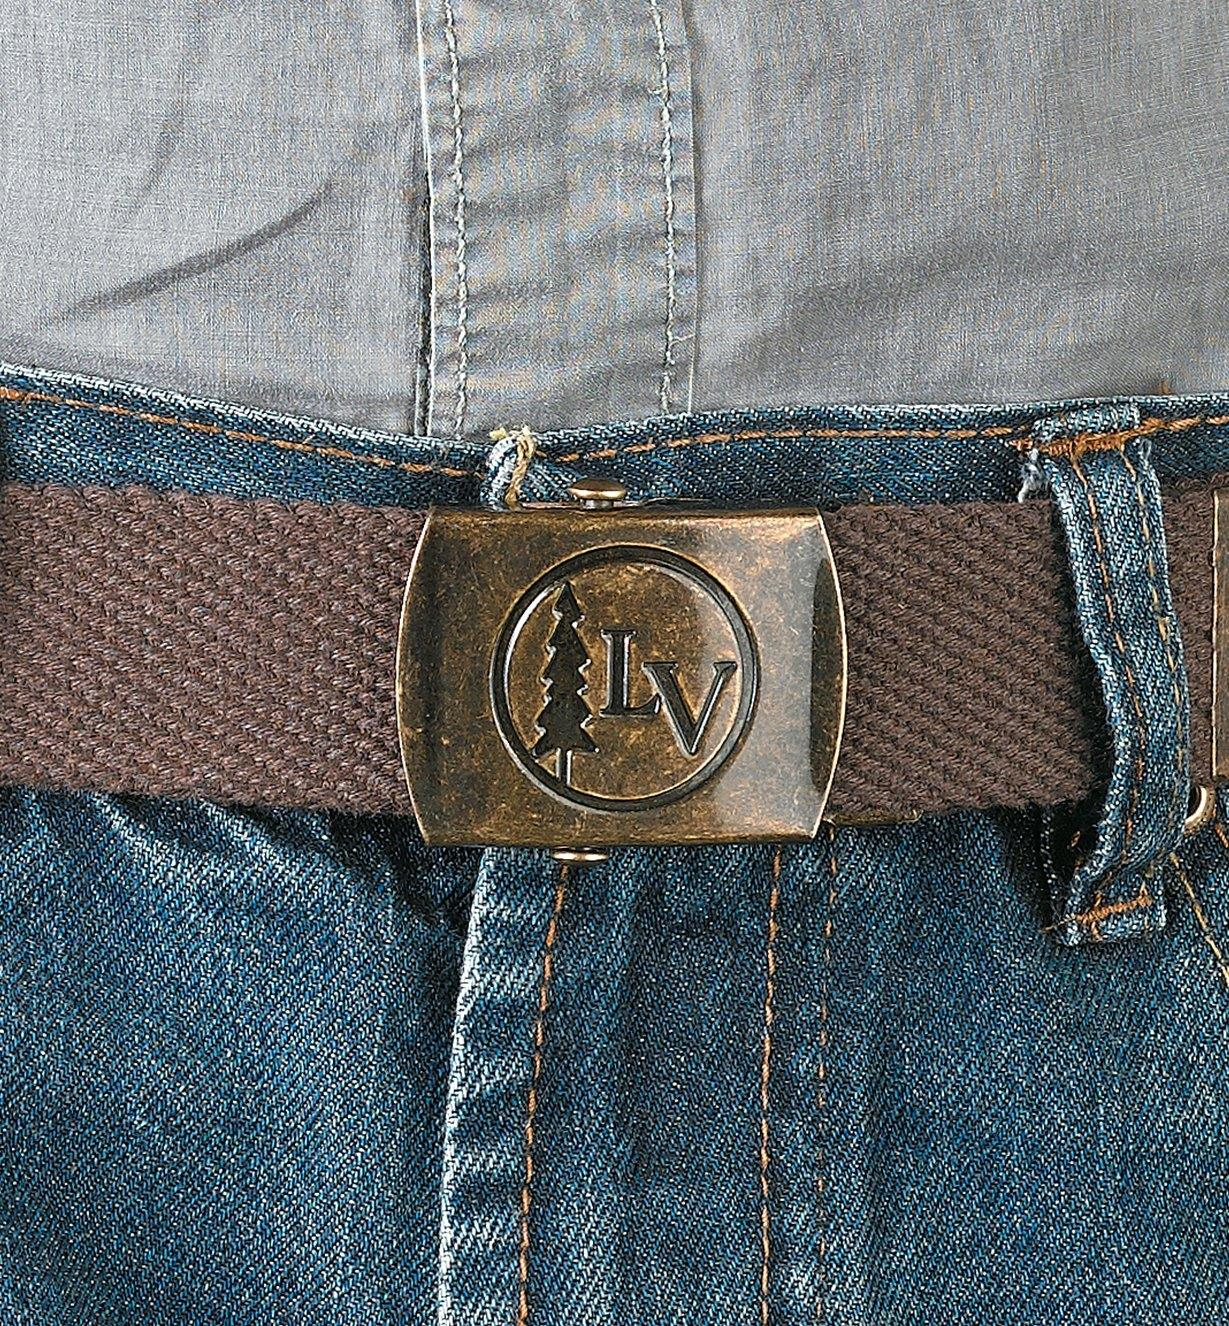 Brown Lee Valley Belt worn with a pair of jeans